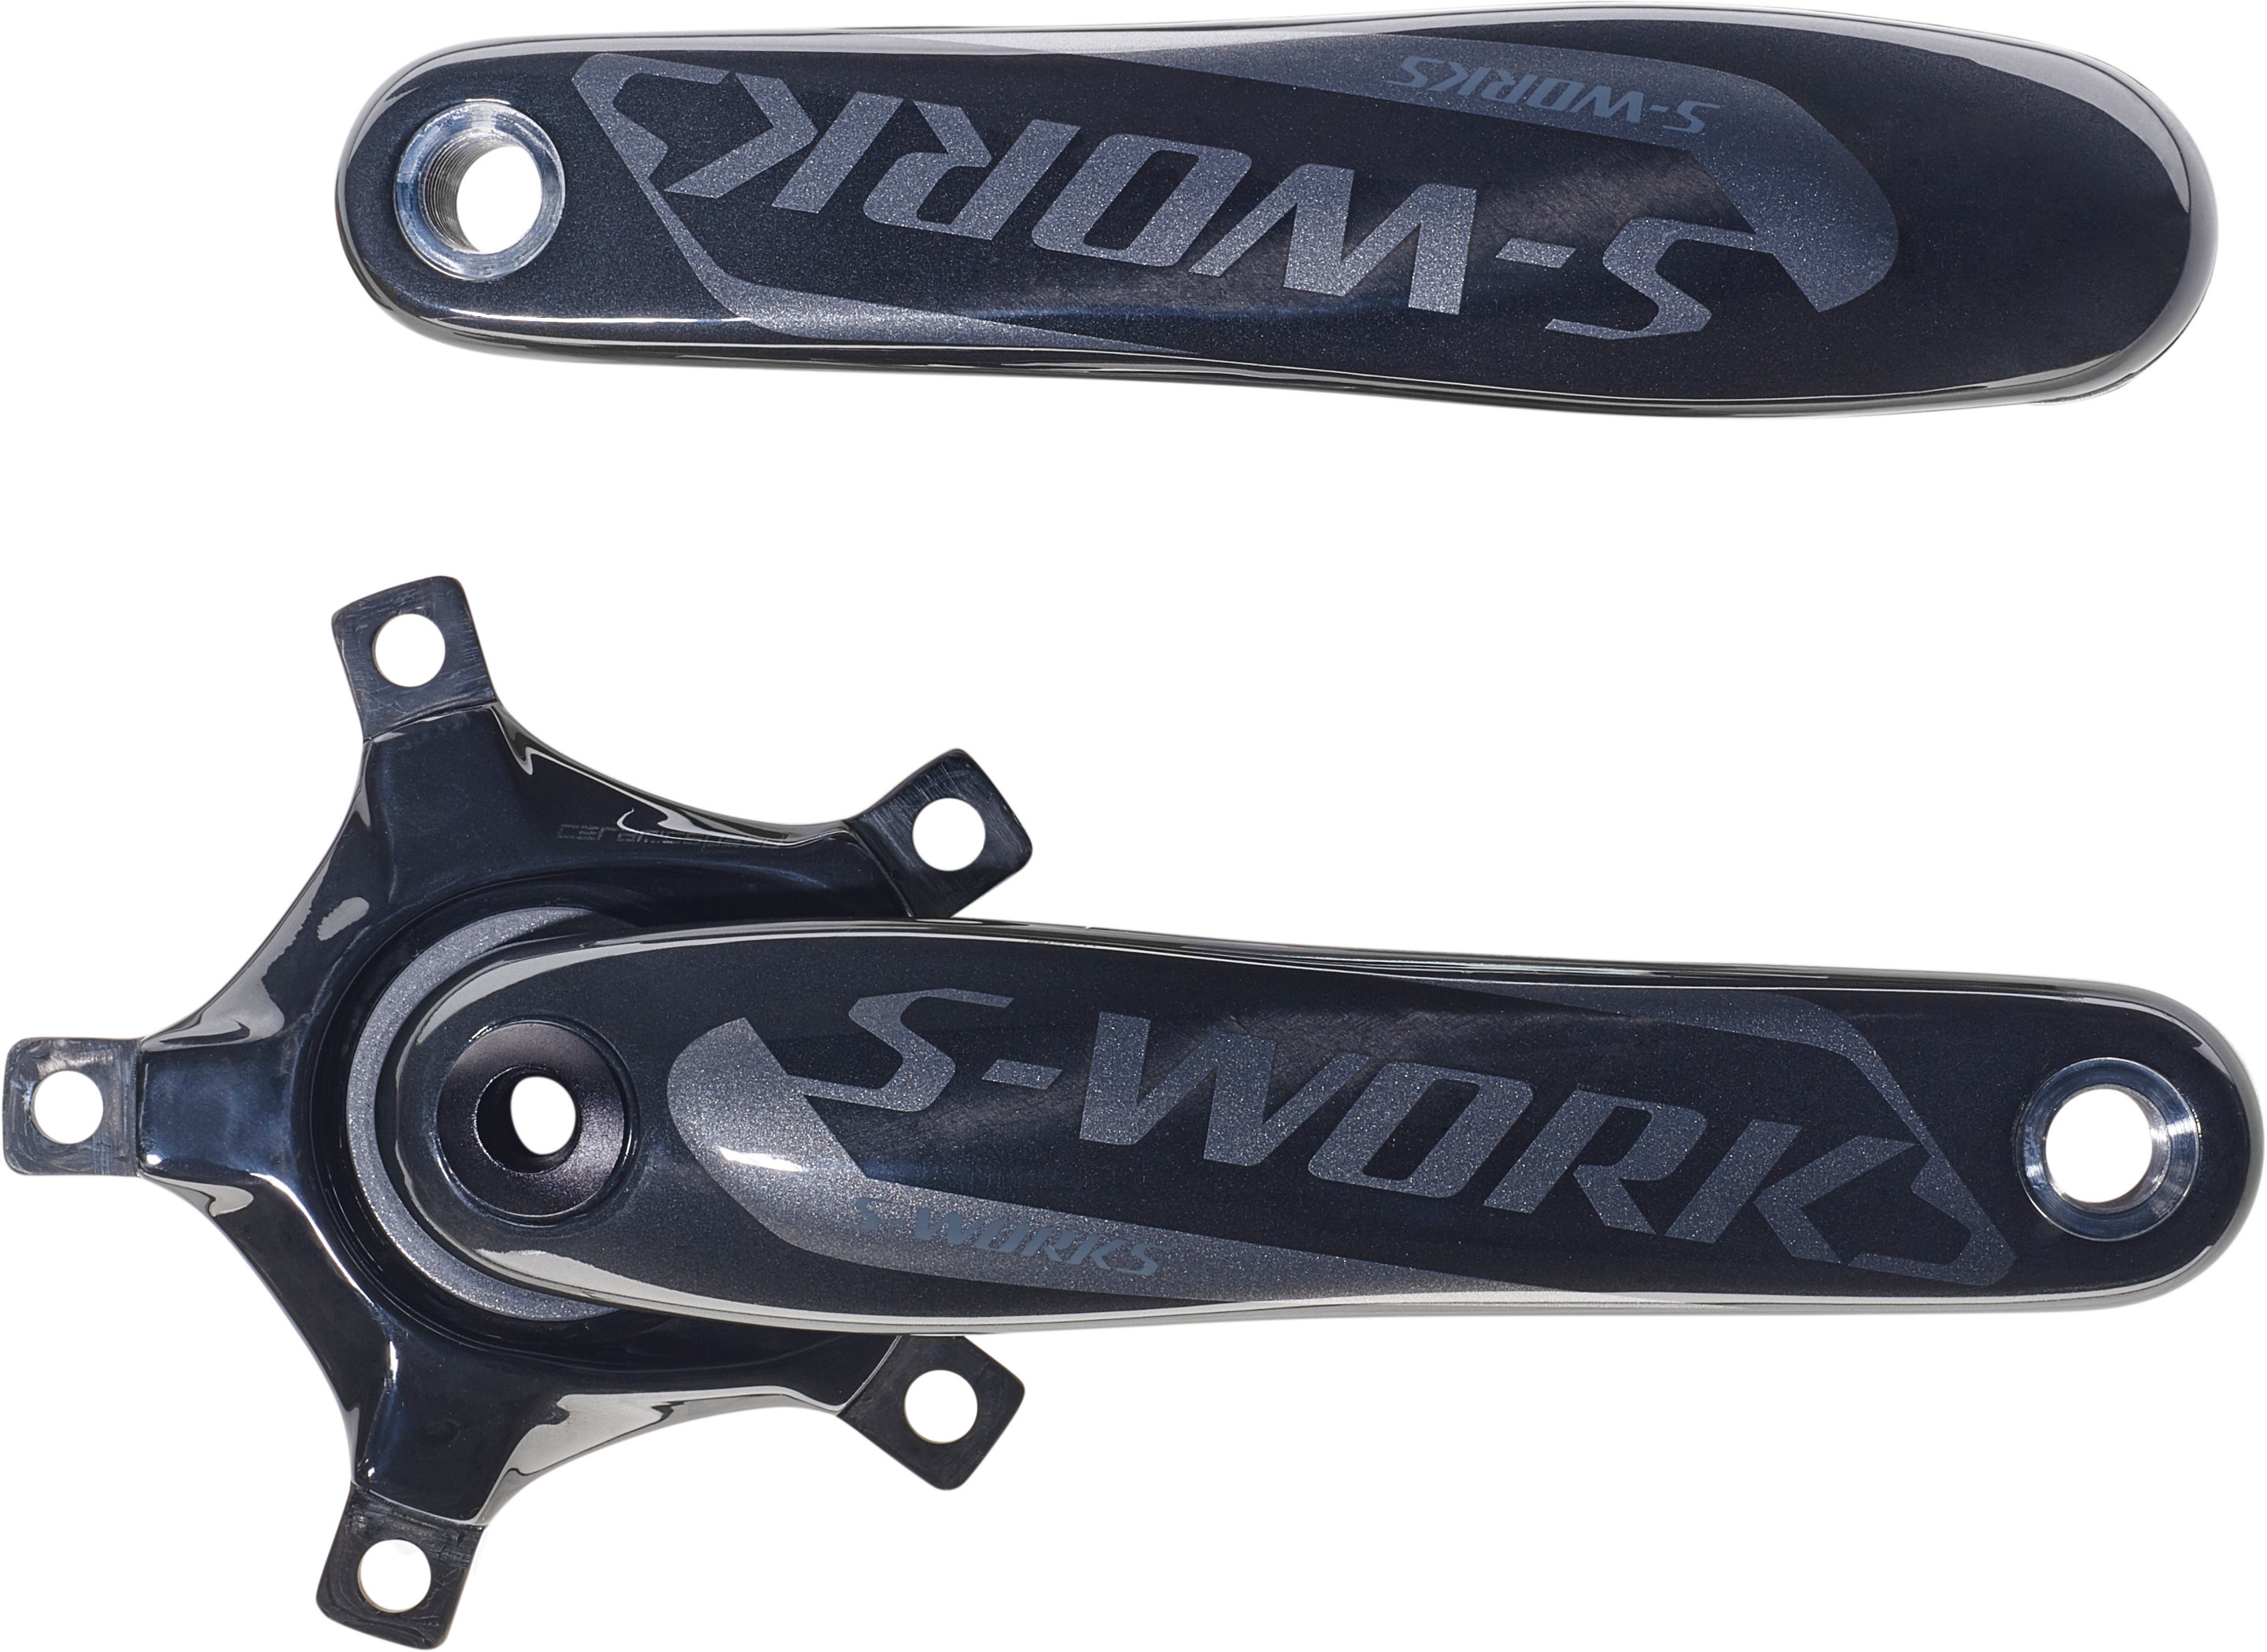 SPECIALIZED SW CARBON CRANK SET RD CHAR 175 - Bikedreams & Dustbikes